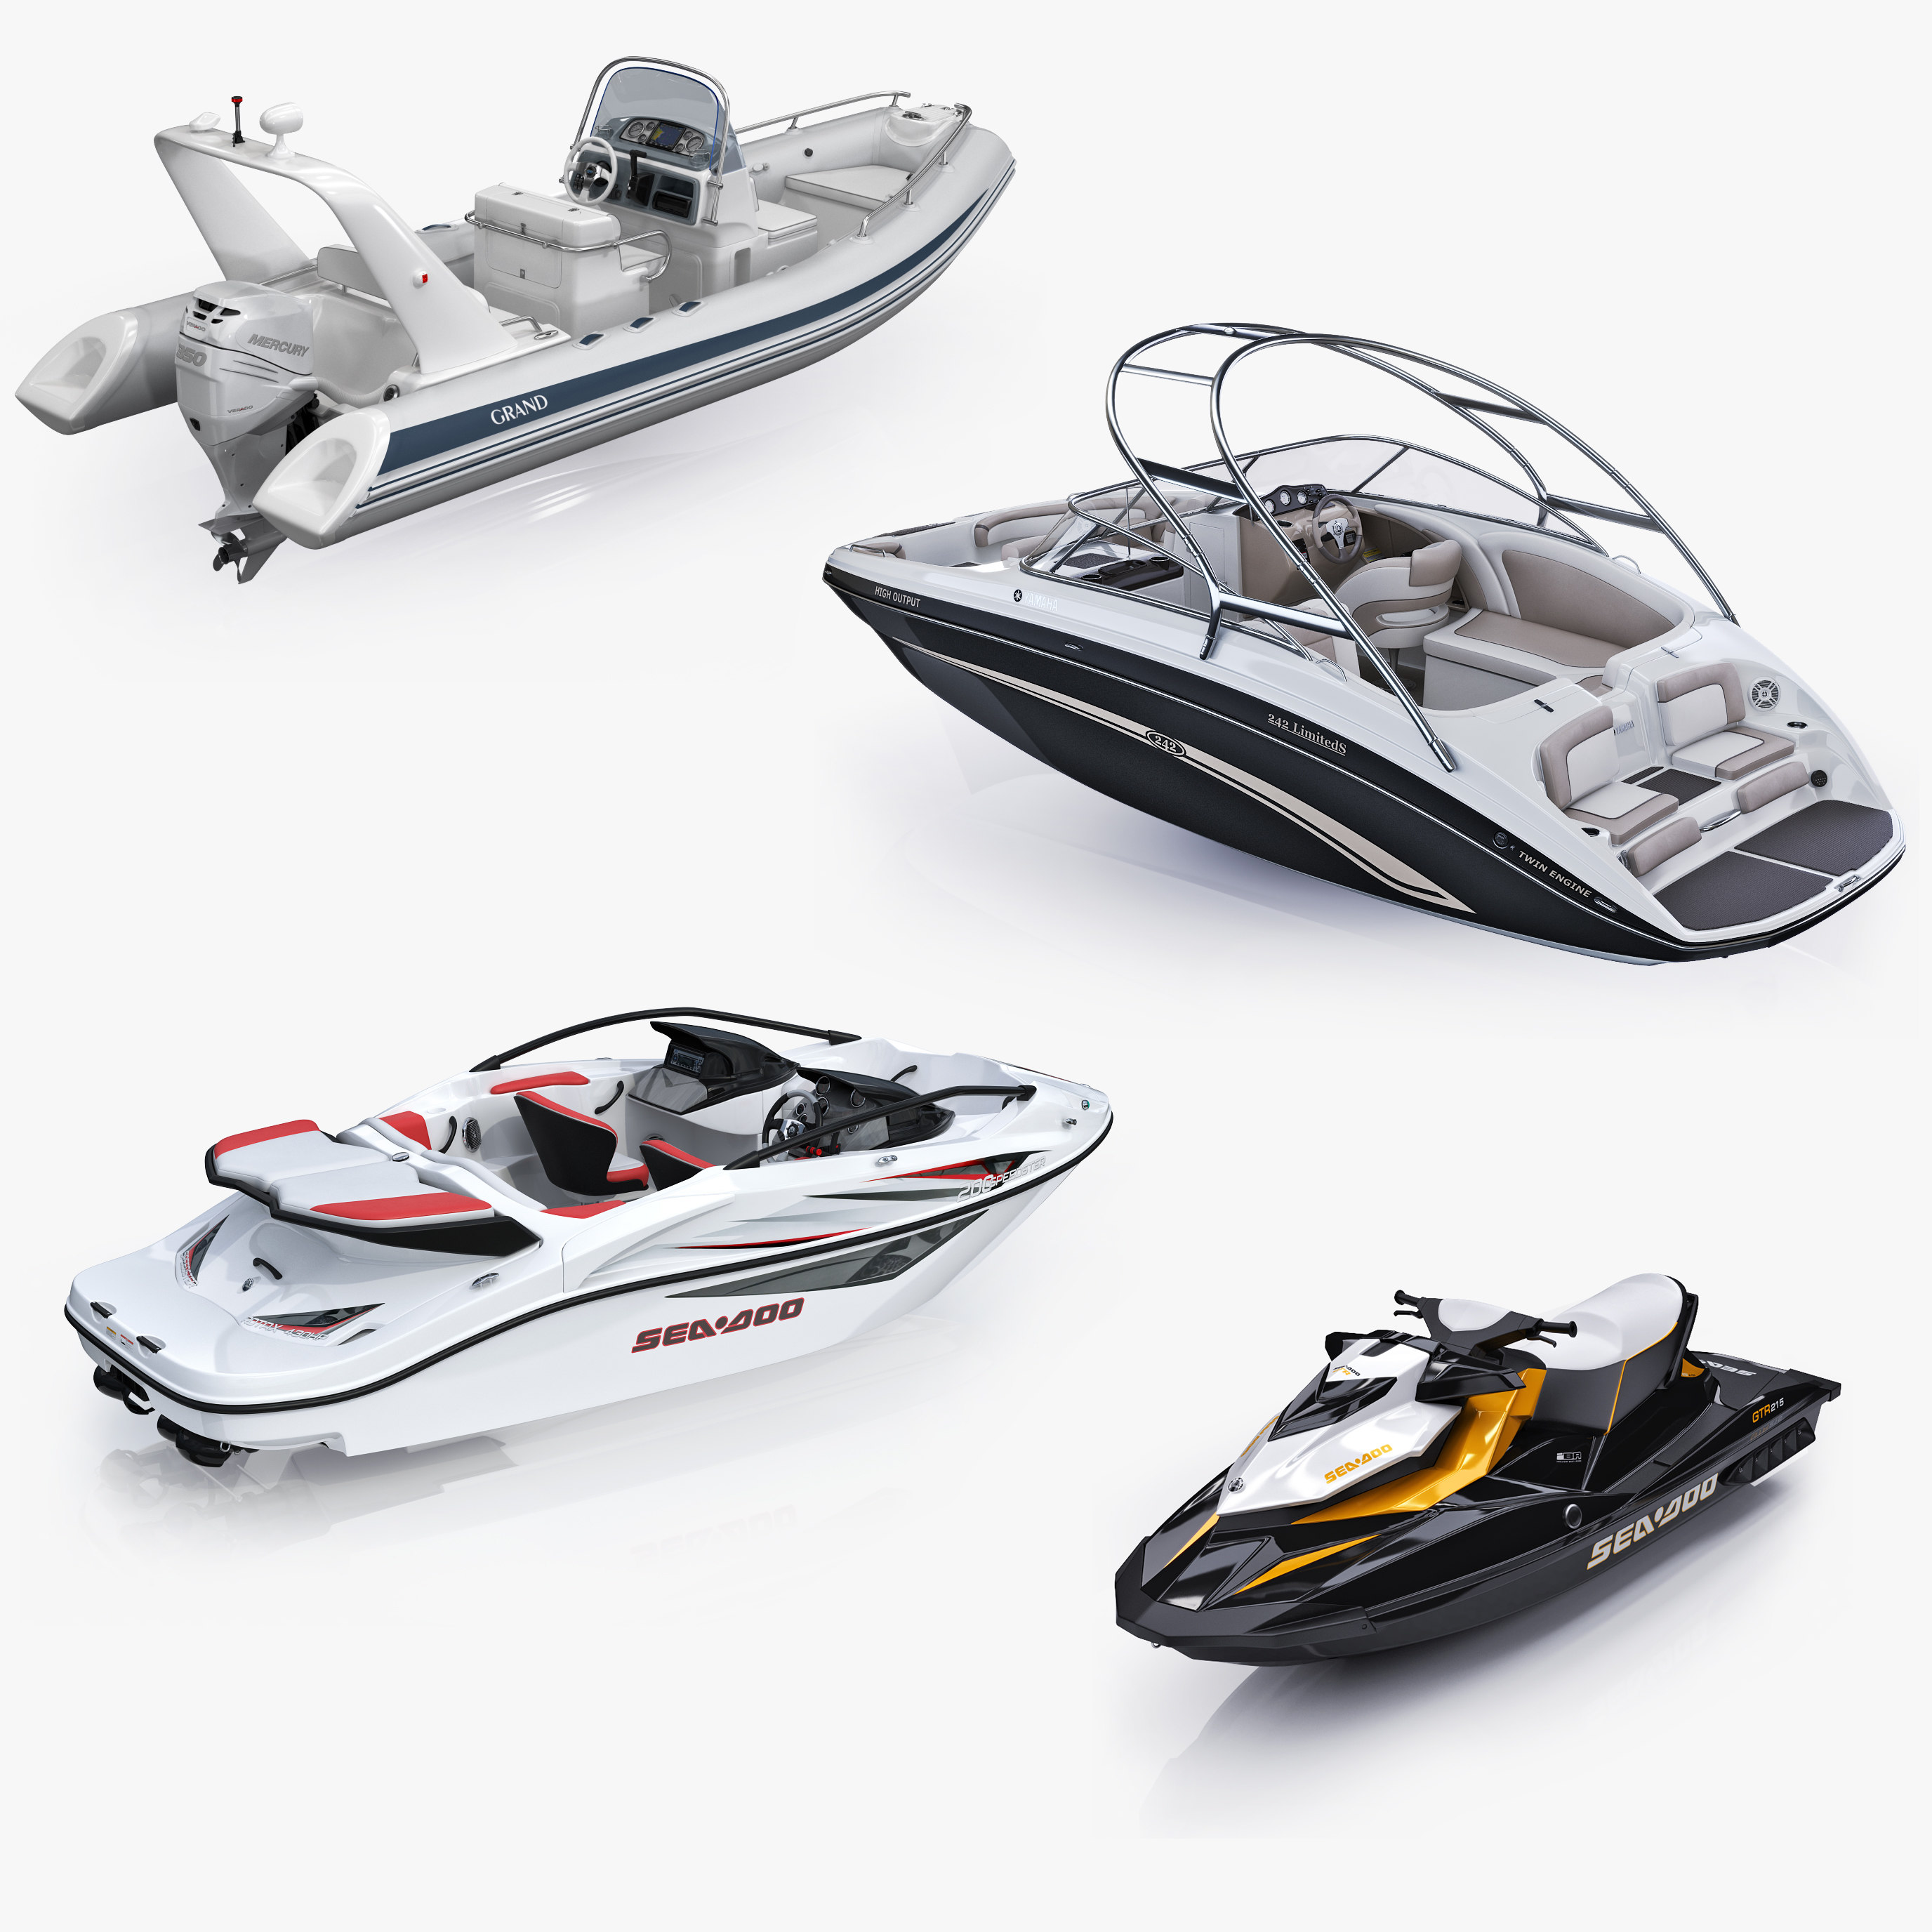 Collection_of_watercraft_and_boats.jpg